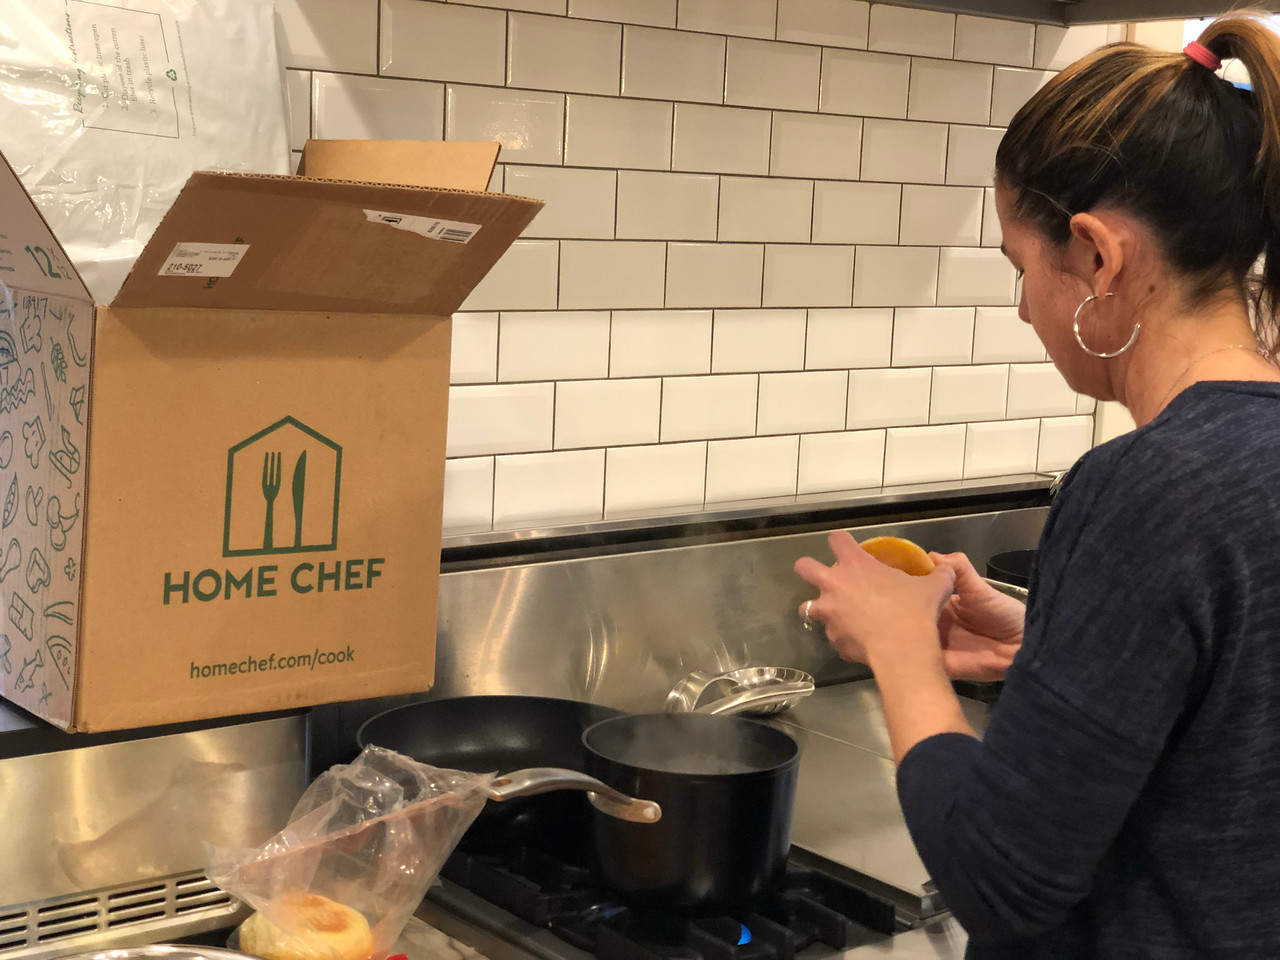 Low-carb Home Chef meal kit prep work is easy